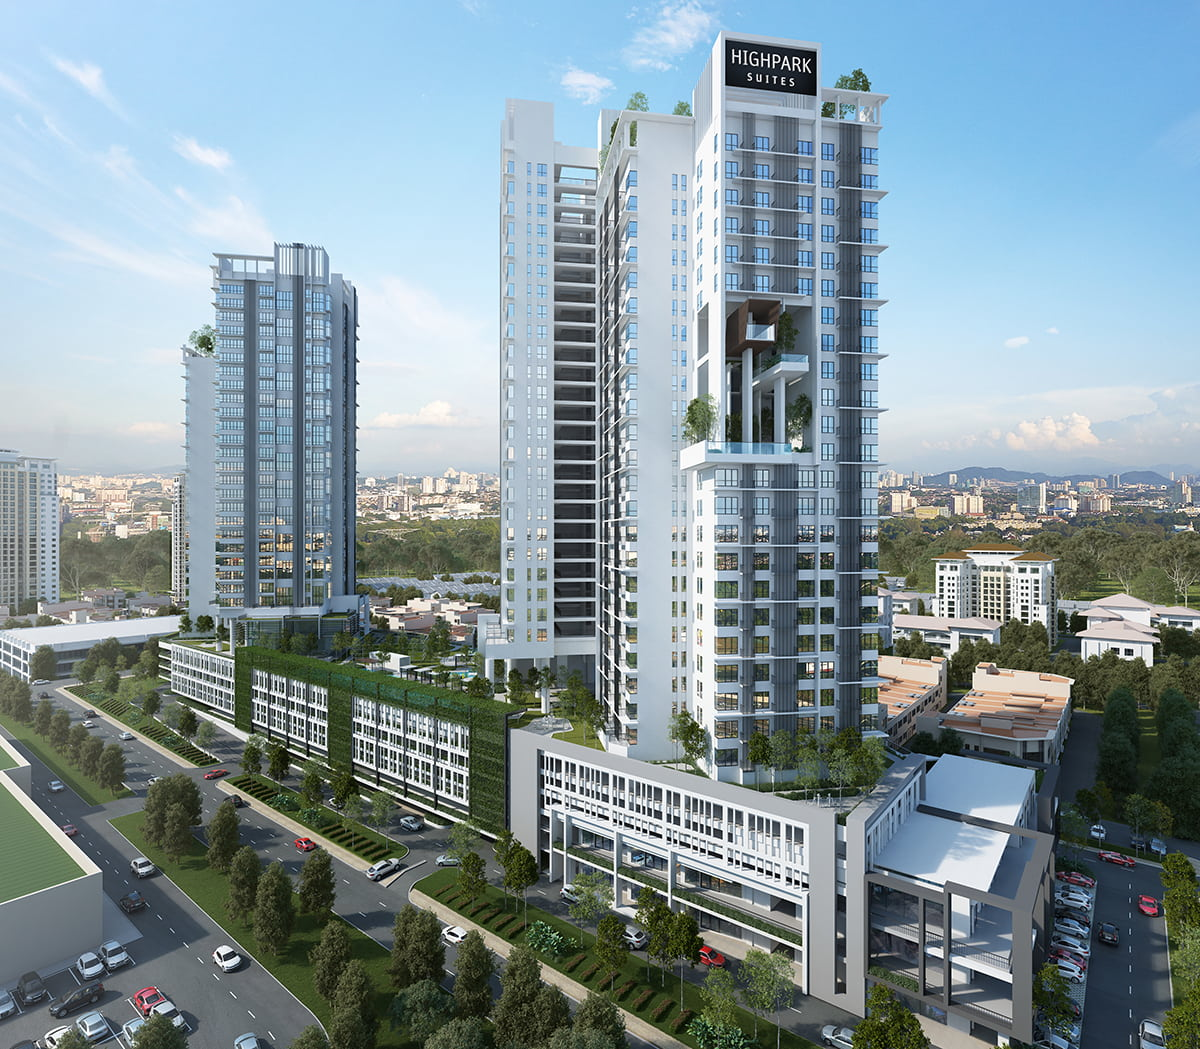 Gamuda Land's HighPark Suites in Petaling Jaya is one of the residential properties in the Klang Valley where Maybank Islamic's HouzKEY scheme is applicable.